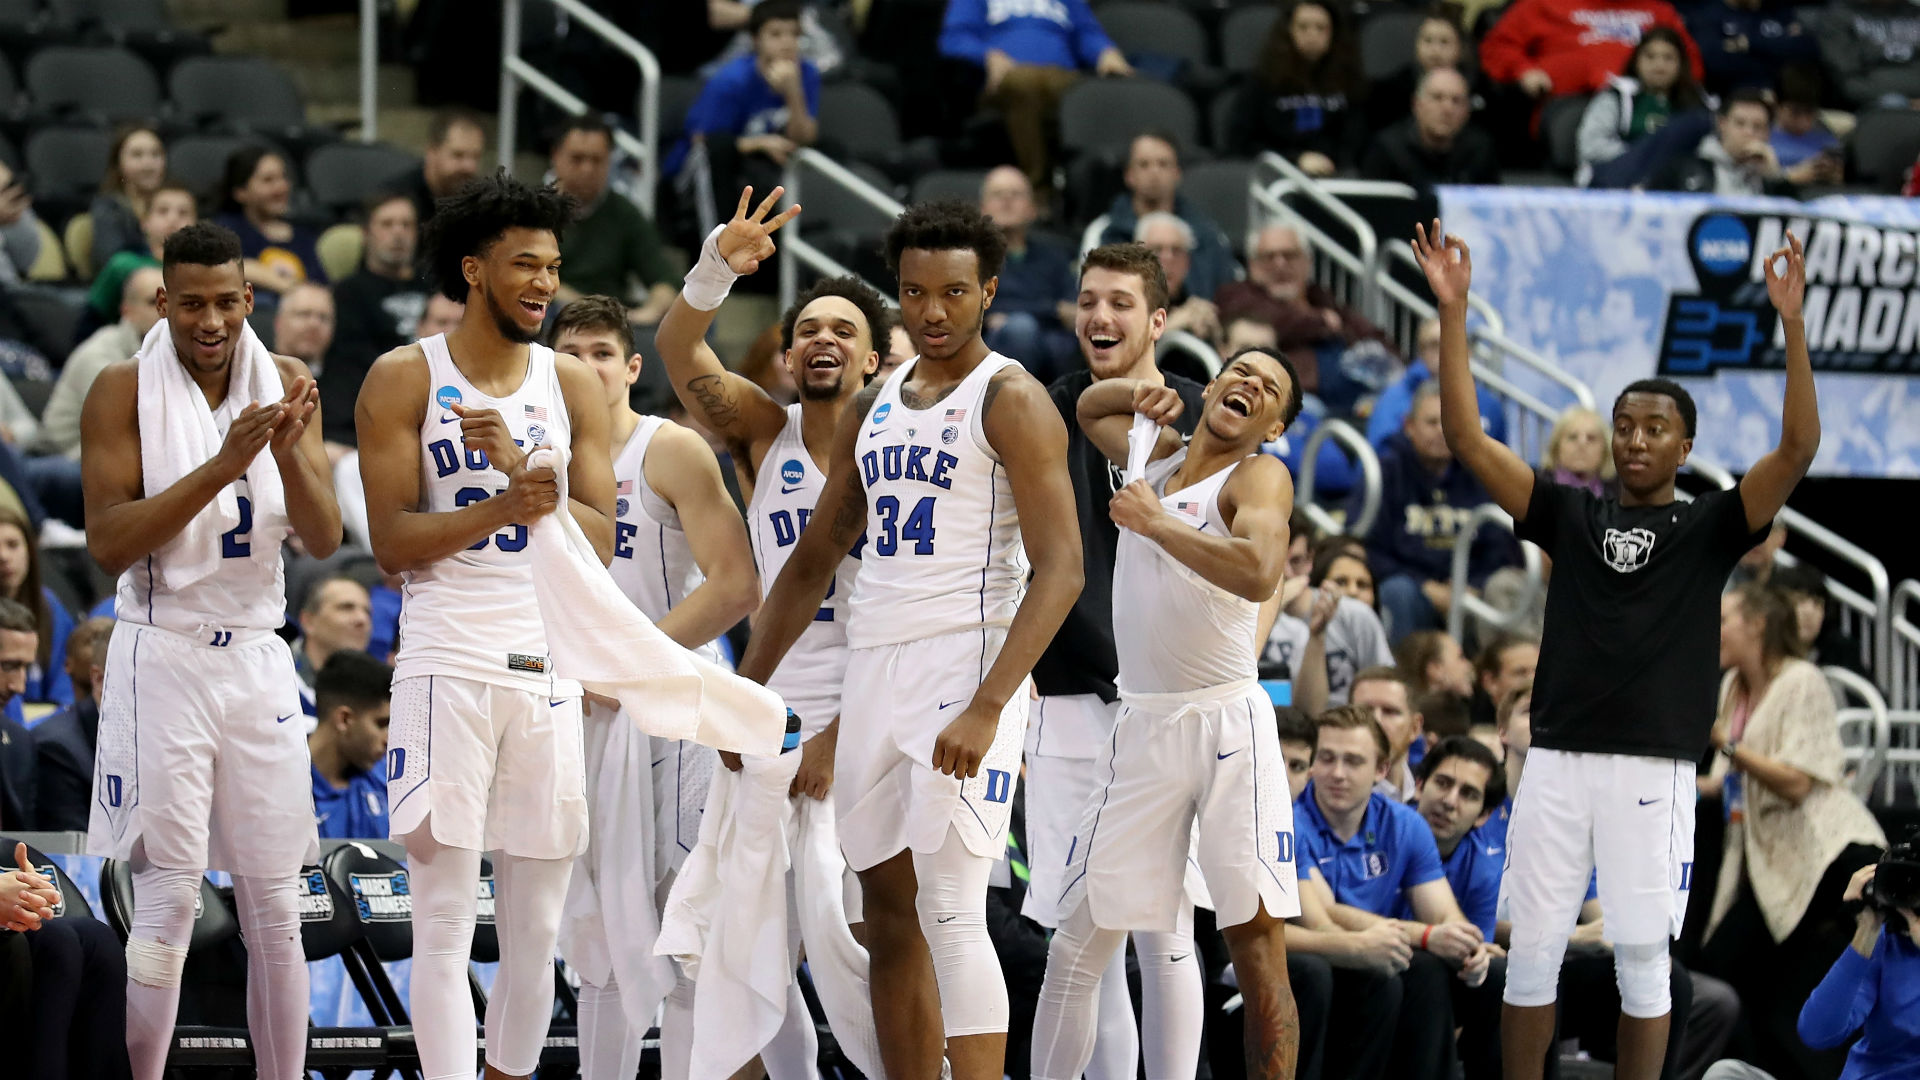 Watch Duke vs. Rhode Island NCAA Tournament